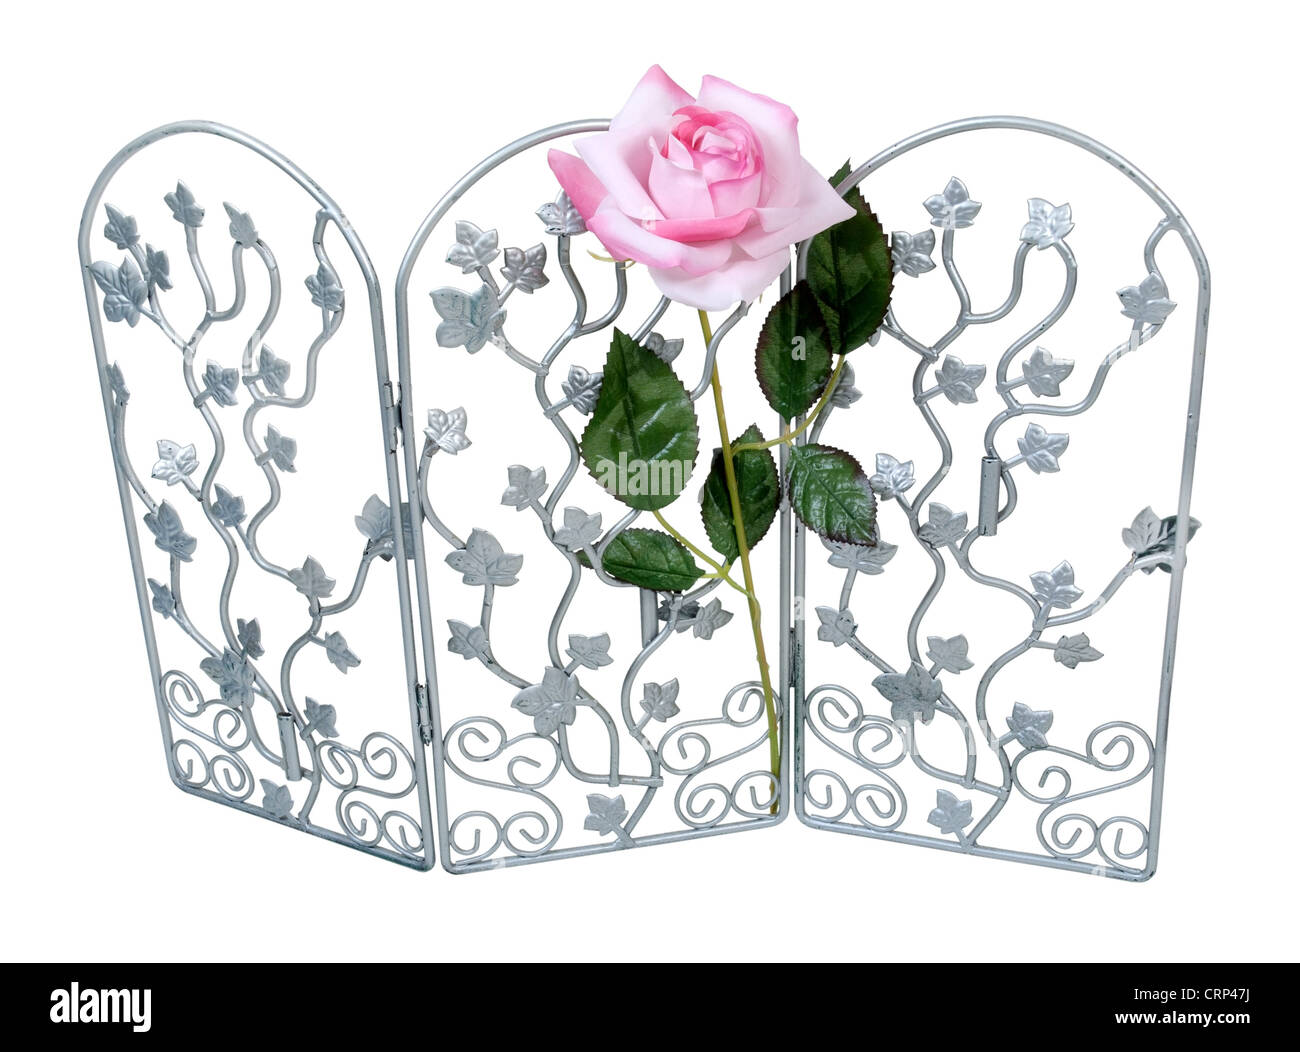 Pink rose on a silver trellis to support it as it grows - path included - Stock Image